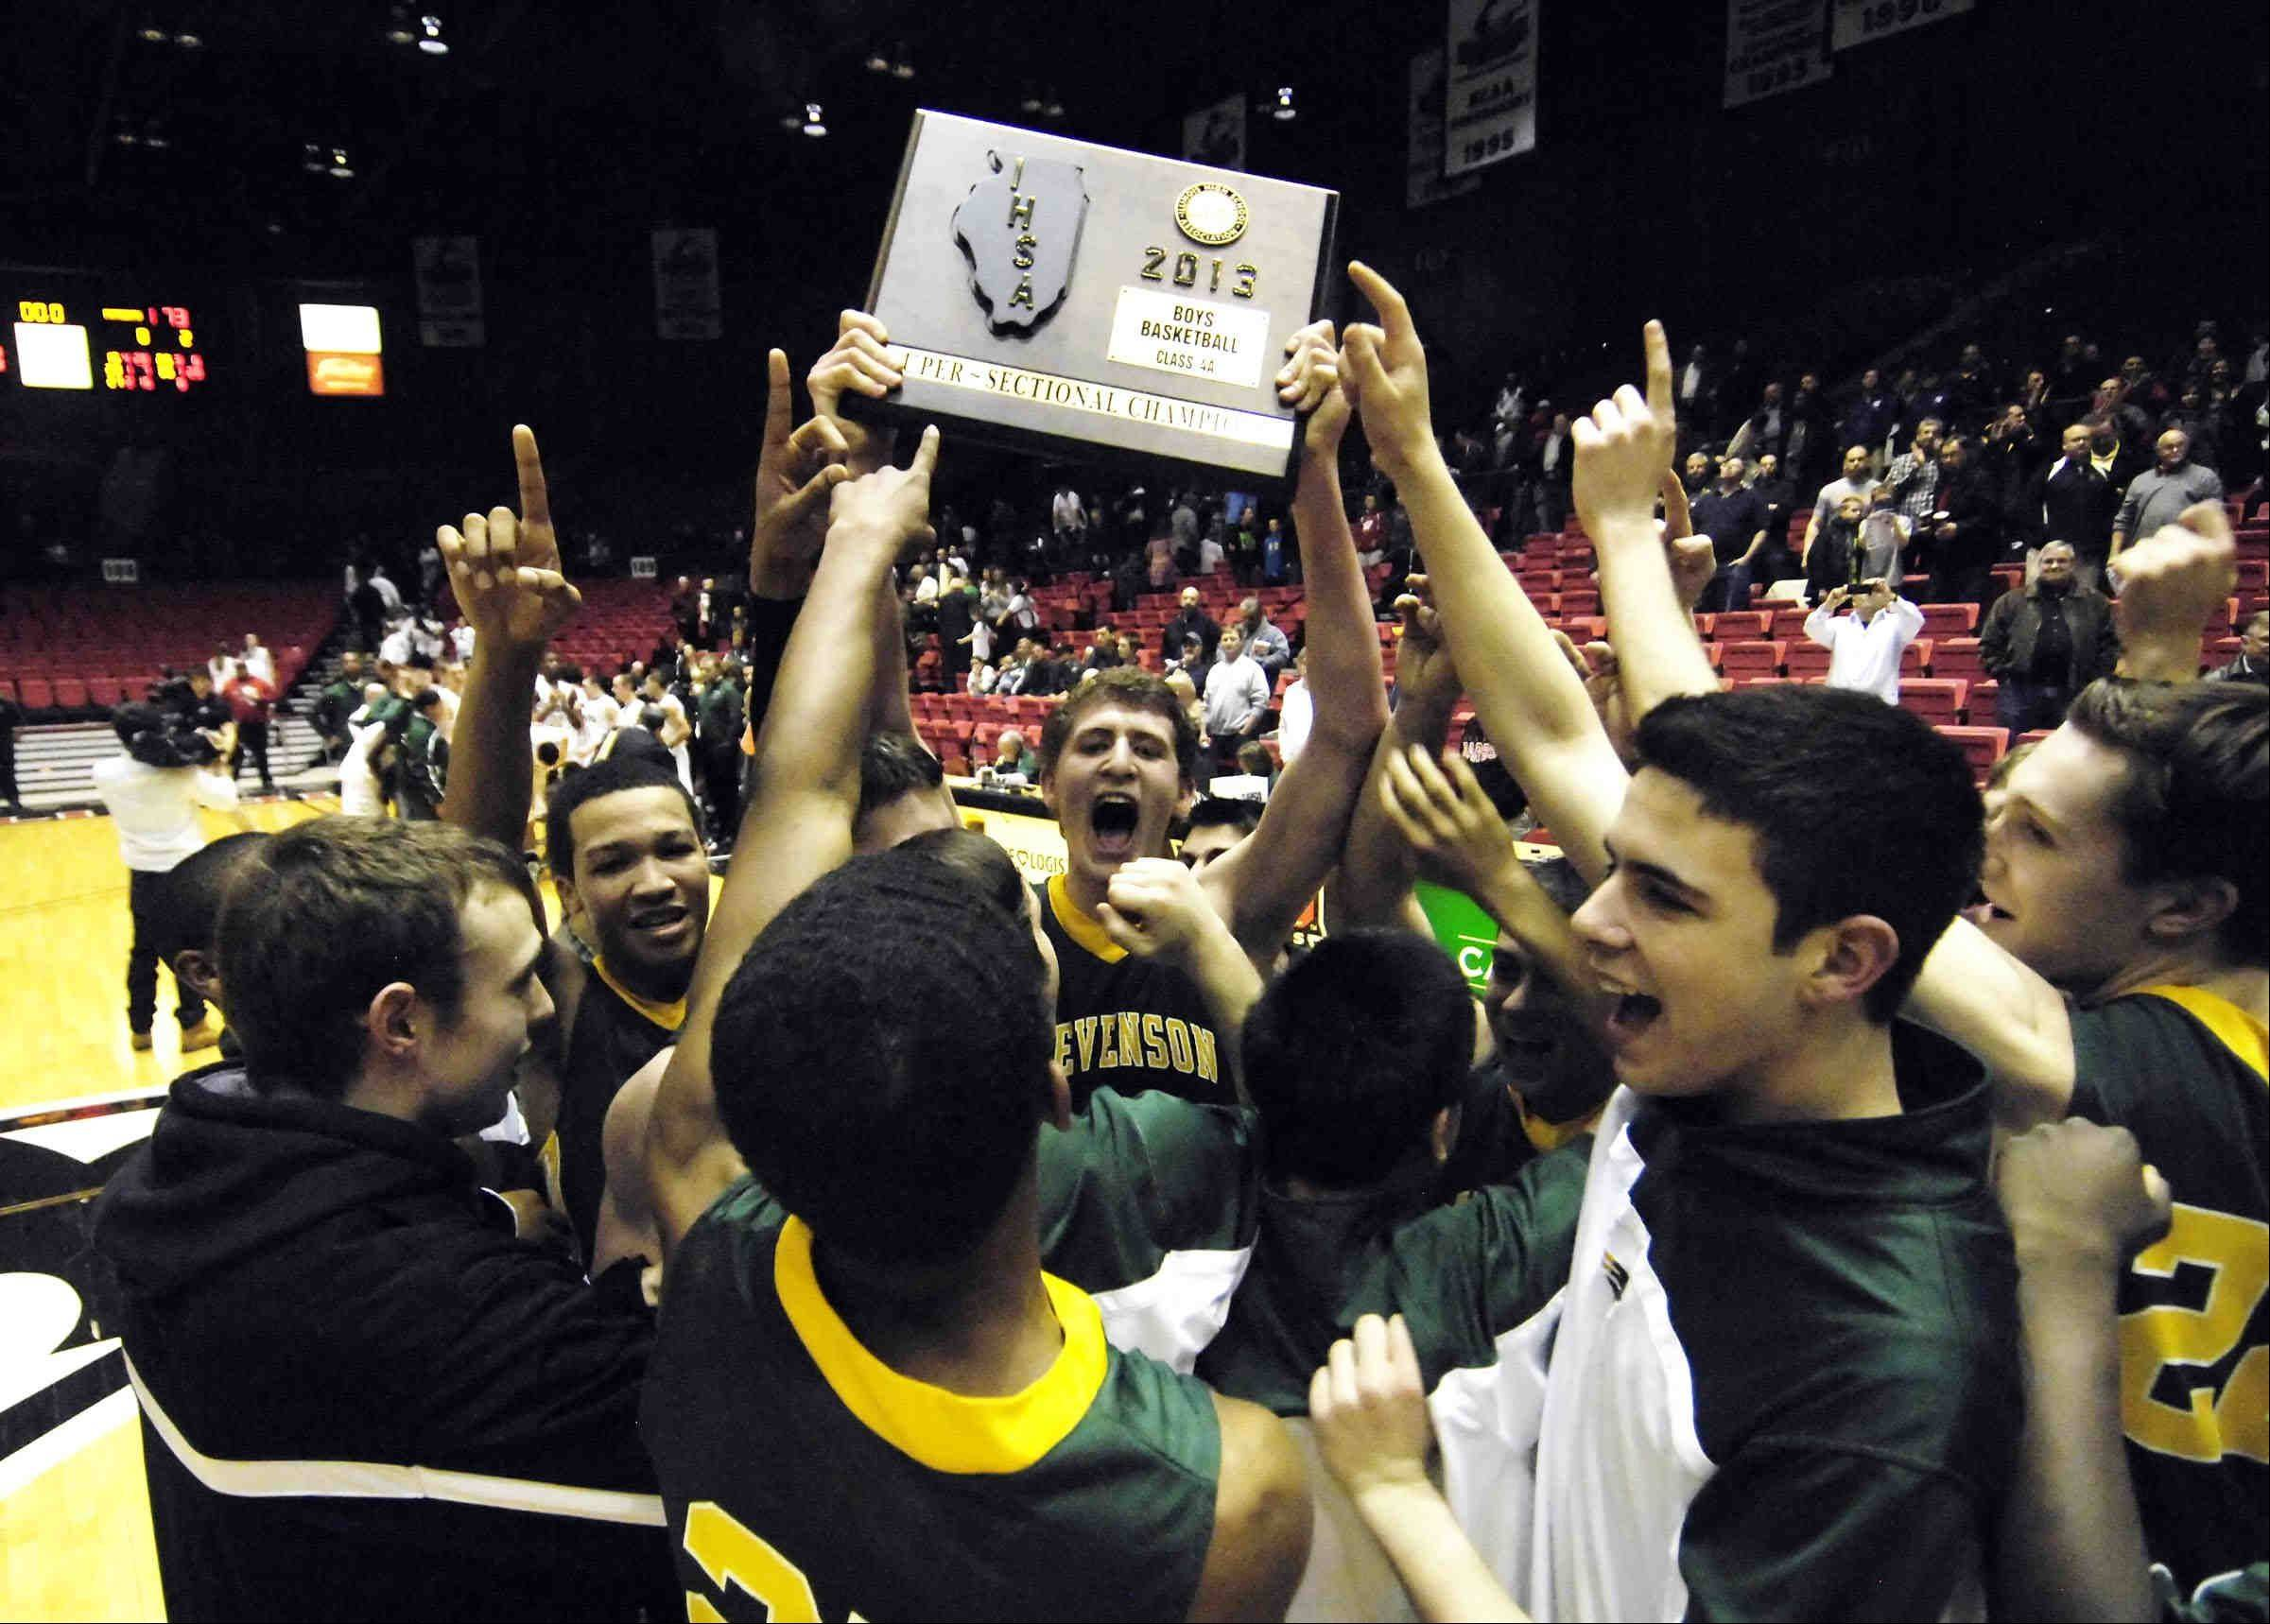 Stevenson marches to Peoria